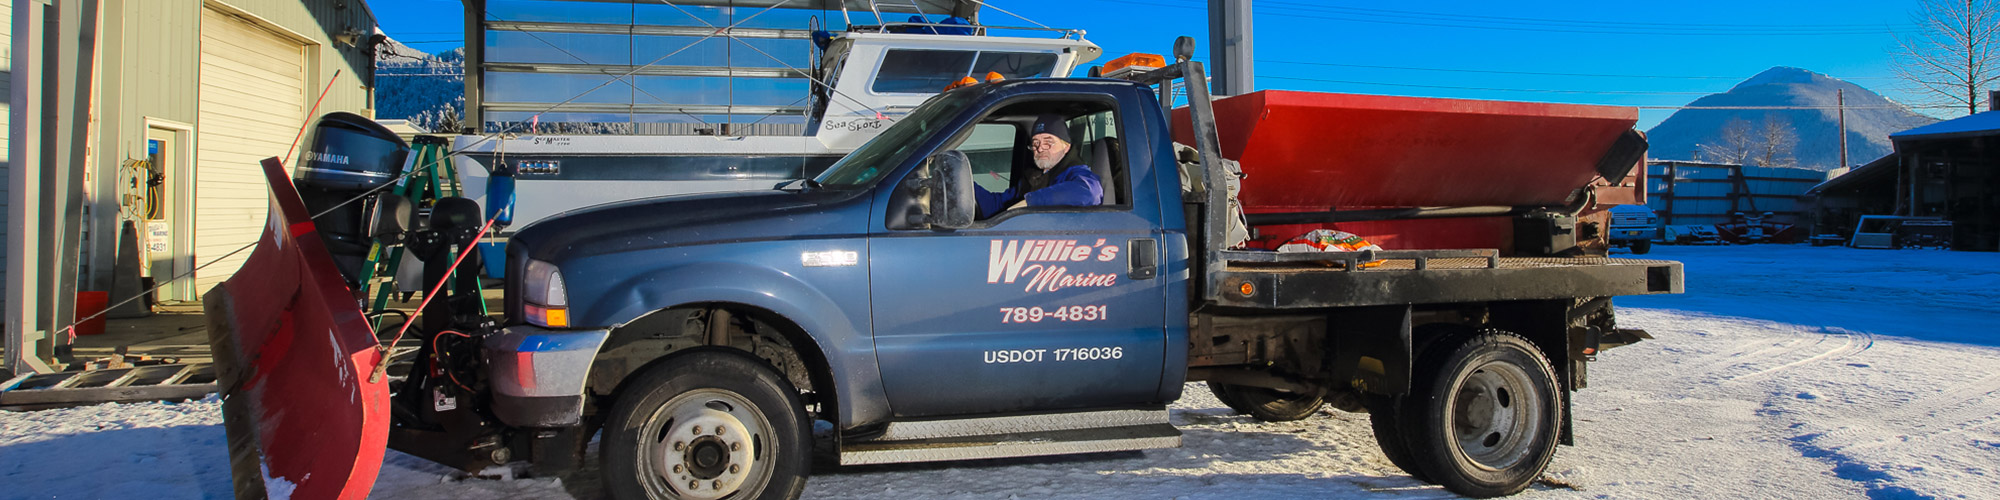 Willie's Marine - Snow Plowing